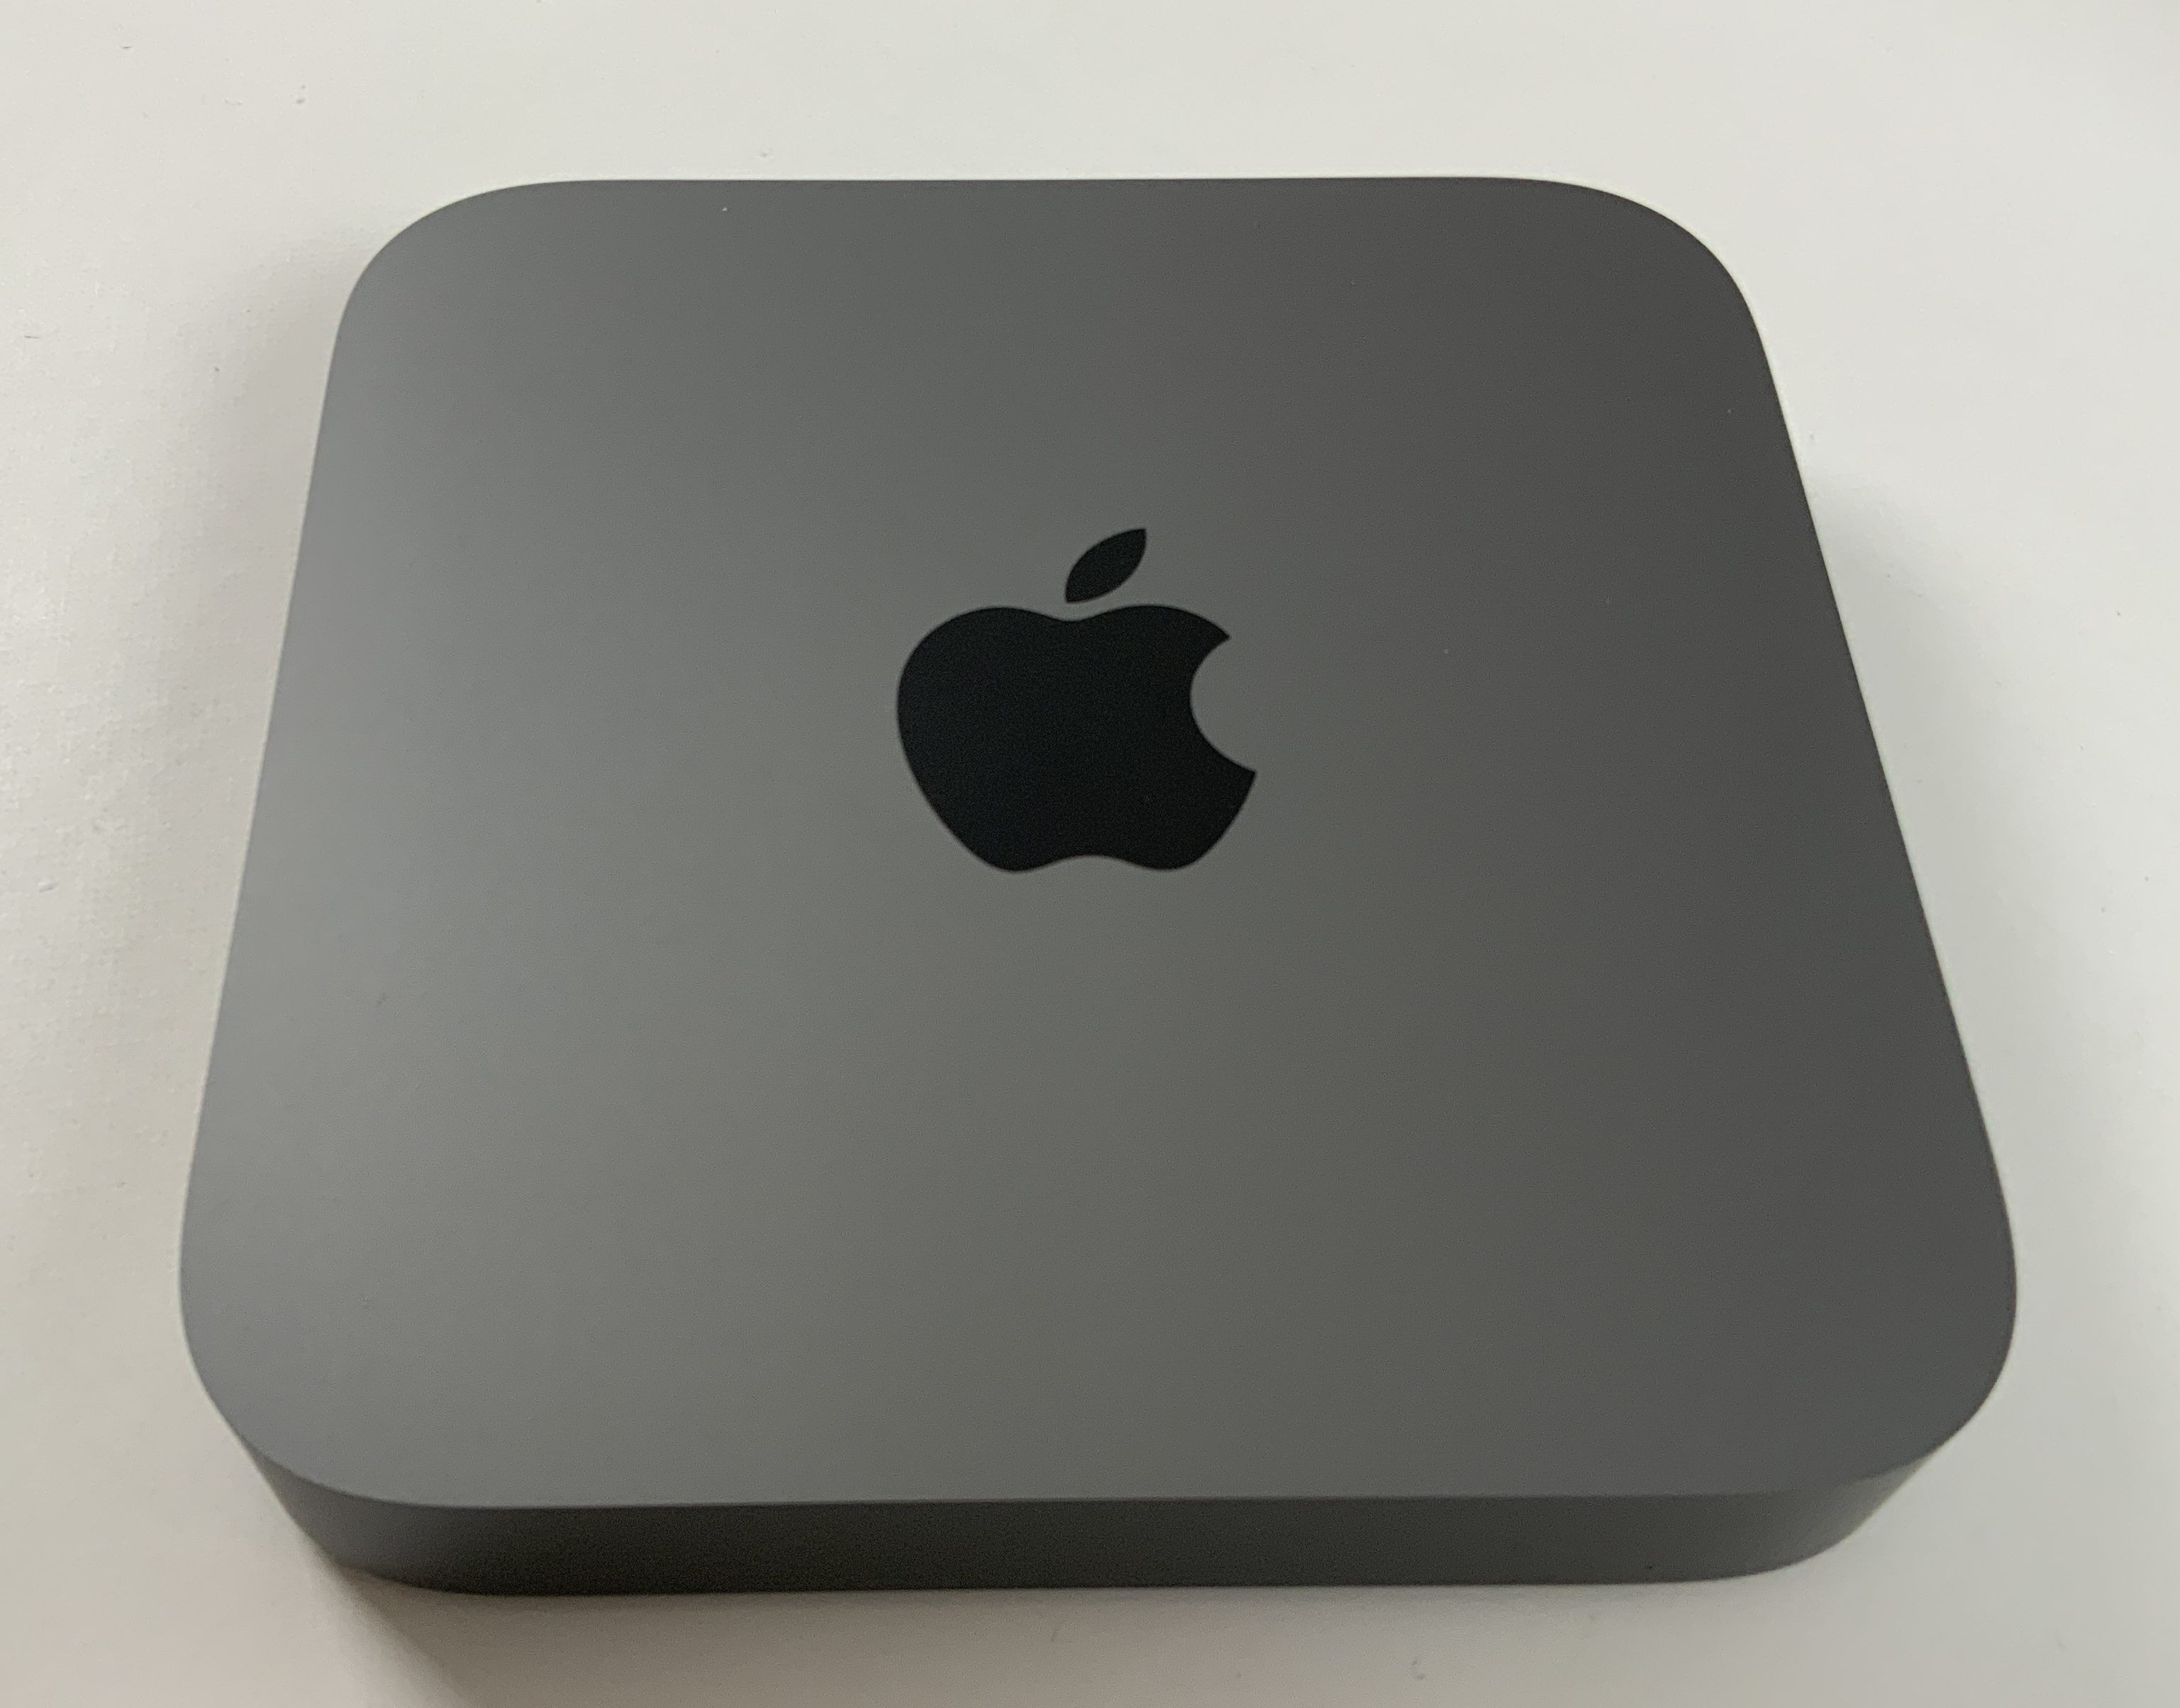 Mac Mini Late 2018 (Intel 6-Core i5 3.0 GHz 64 GB RAM 256 GB SSD), Intel 6-Core i5 3.0 GHz, 64 GB RAM, 256 GB SSD, imagen 1